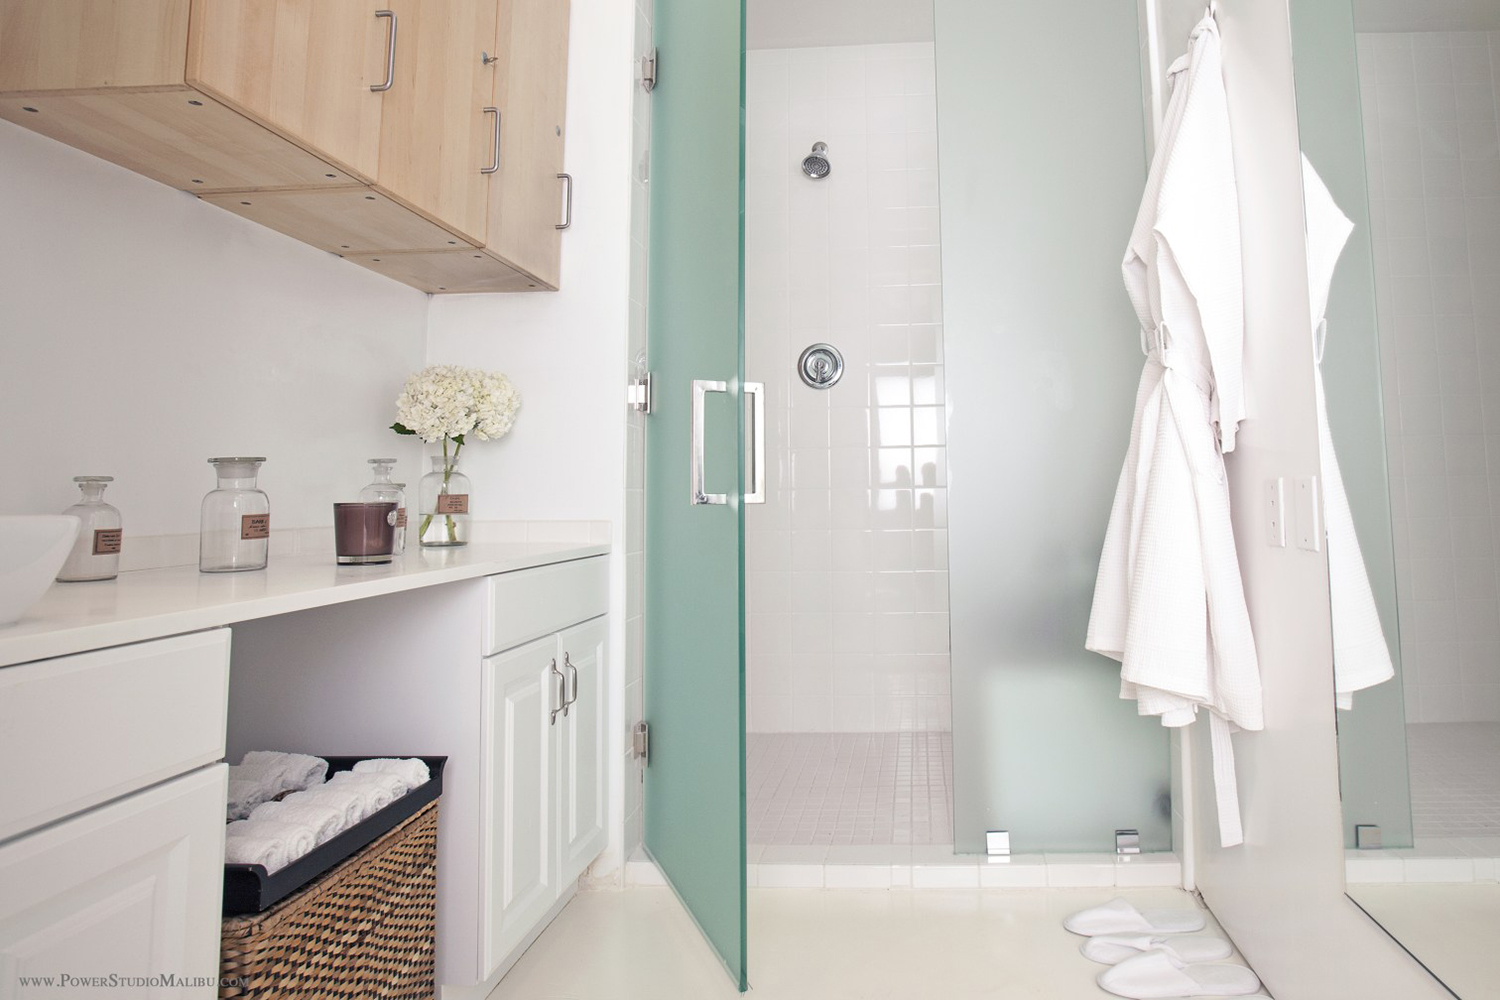 The spa has spacious and comfortable spaces for showering, changing and relaxing.